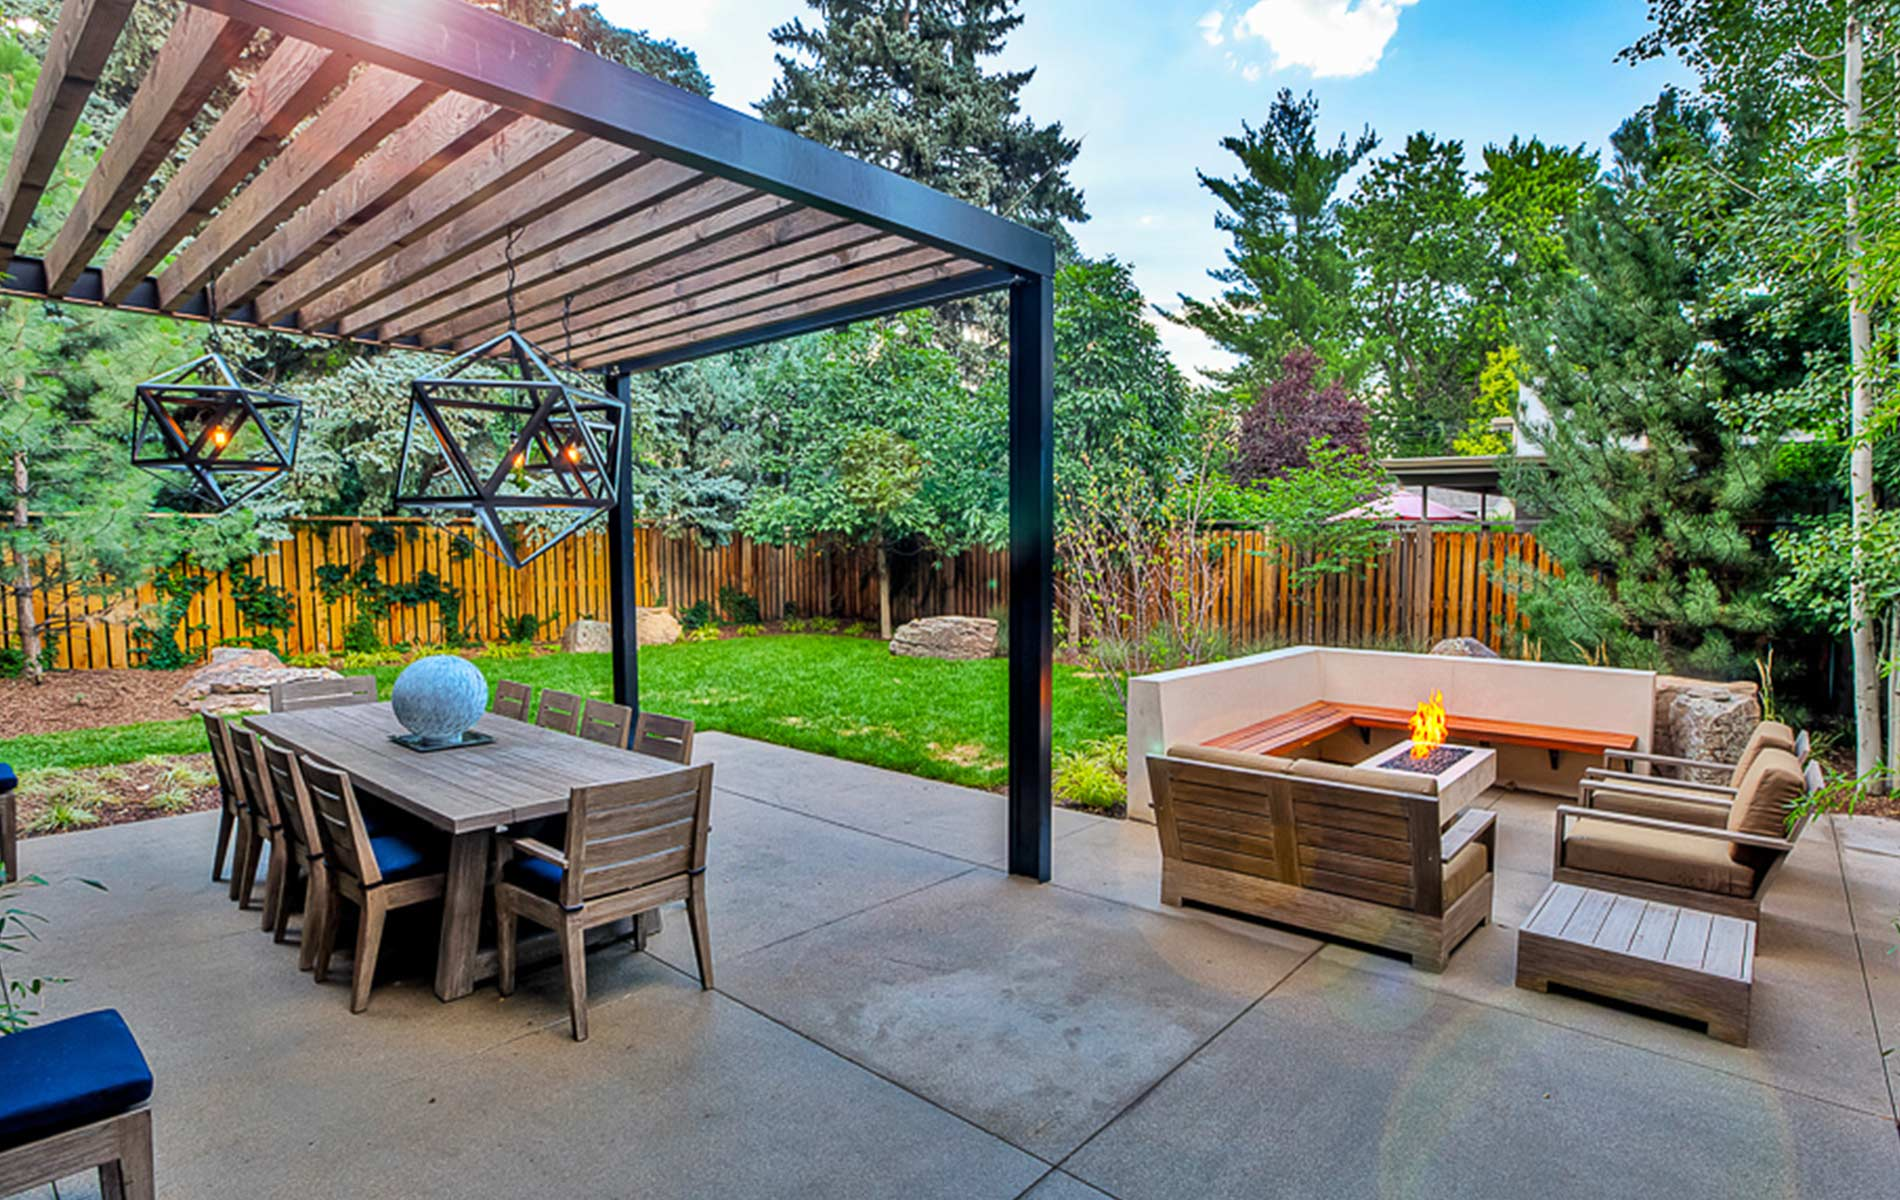 Sleek Modern Outdoor Living Space in Park Hill - Mile High ... on Designer Outdoor Living  id=13960